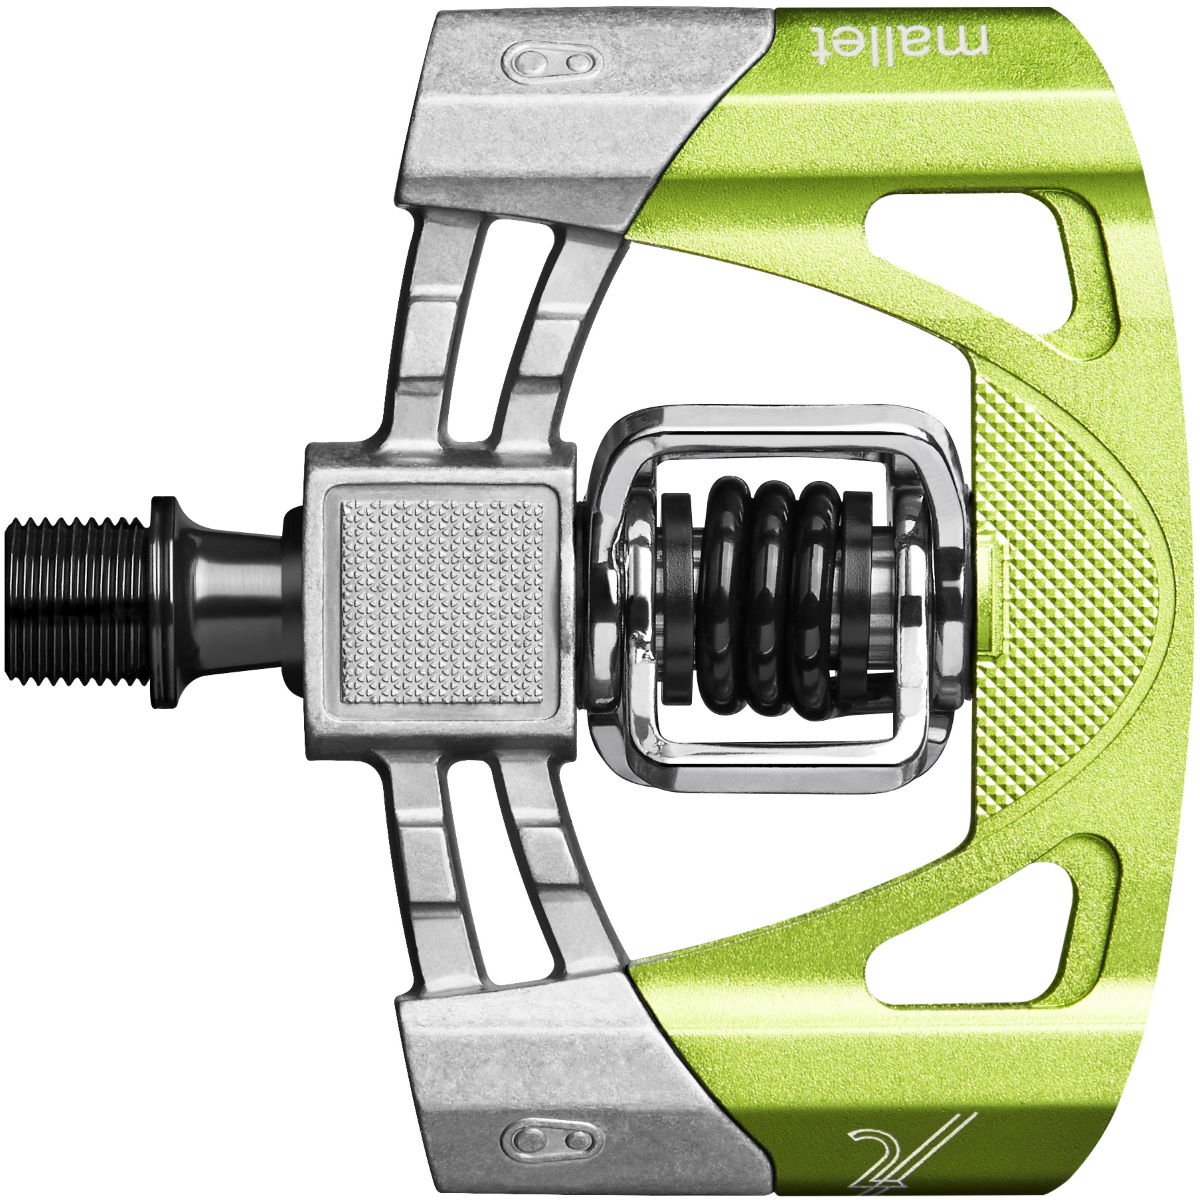 Crank Brothers Crank Brothers Mallet 2 Pedals   Clip-in Pedals